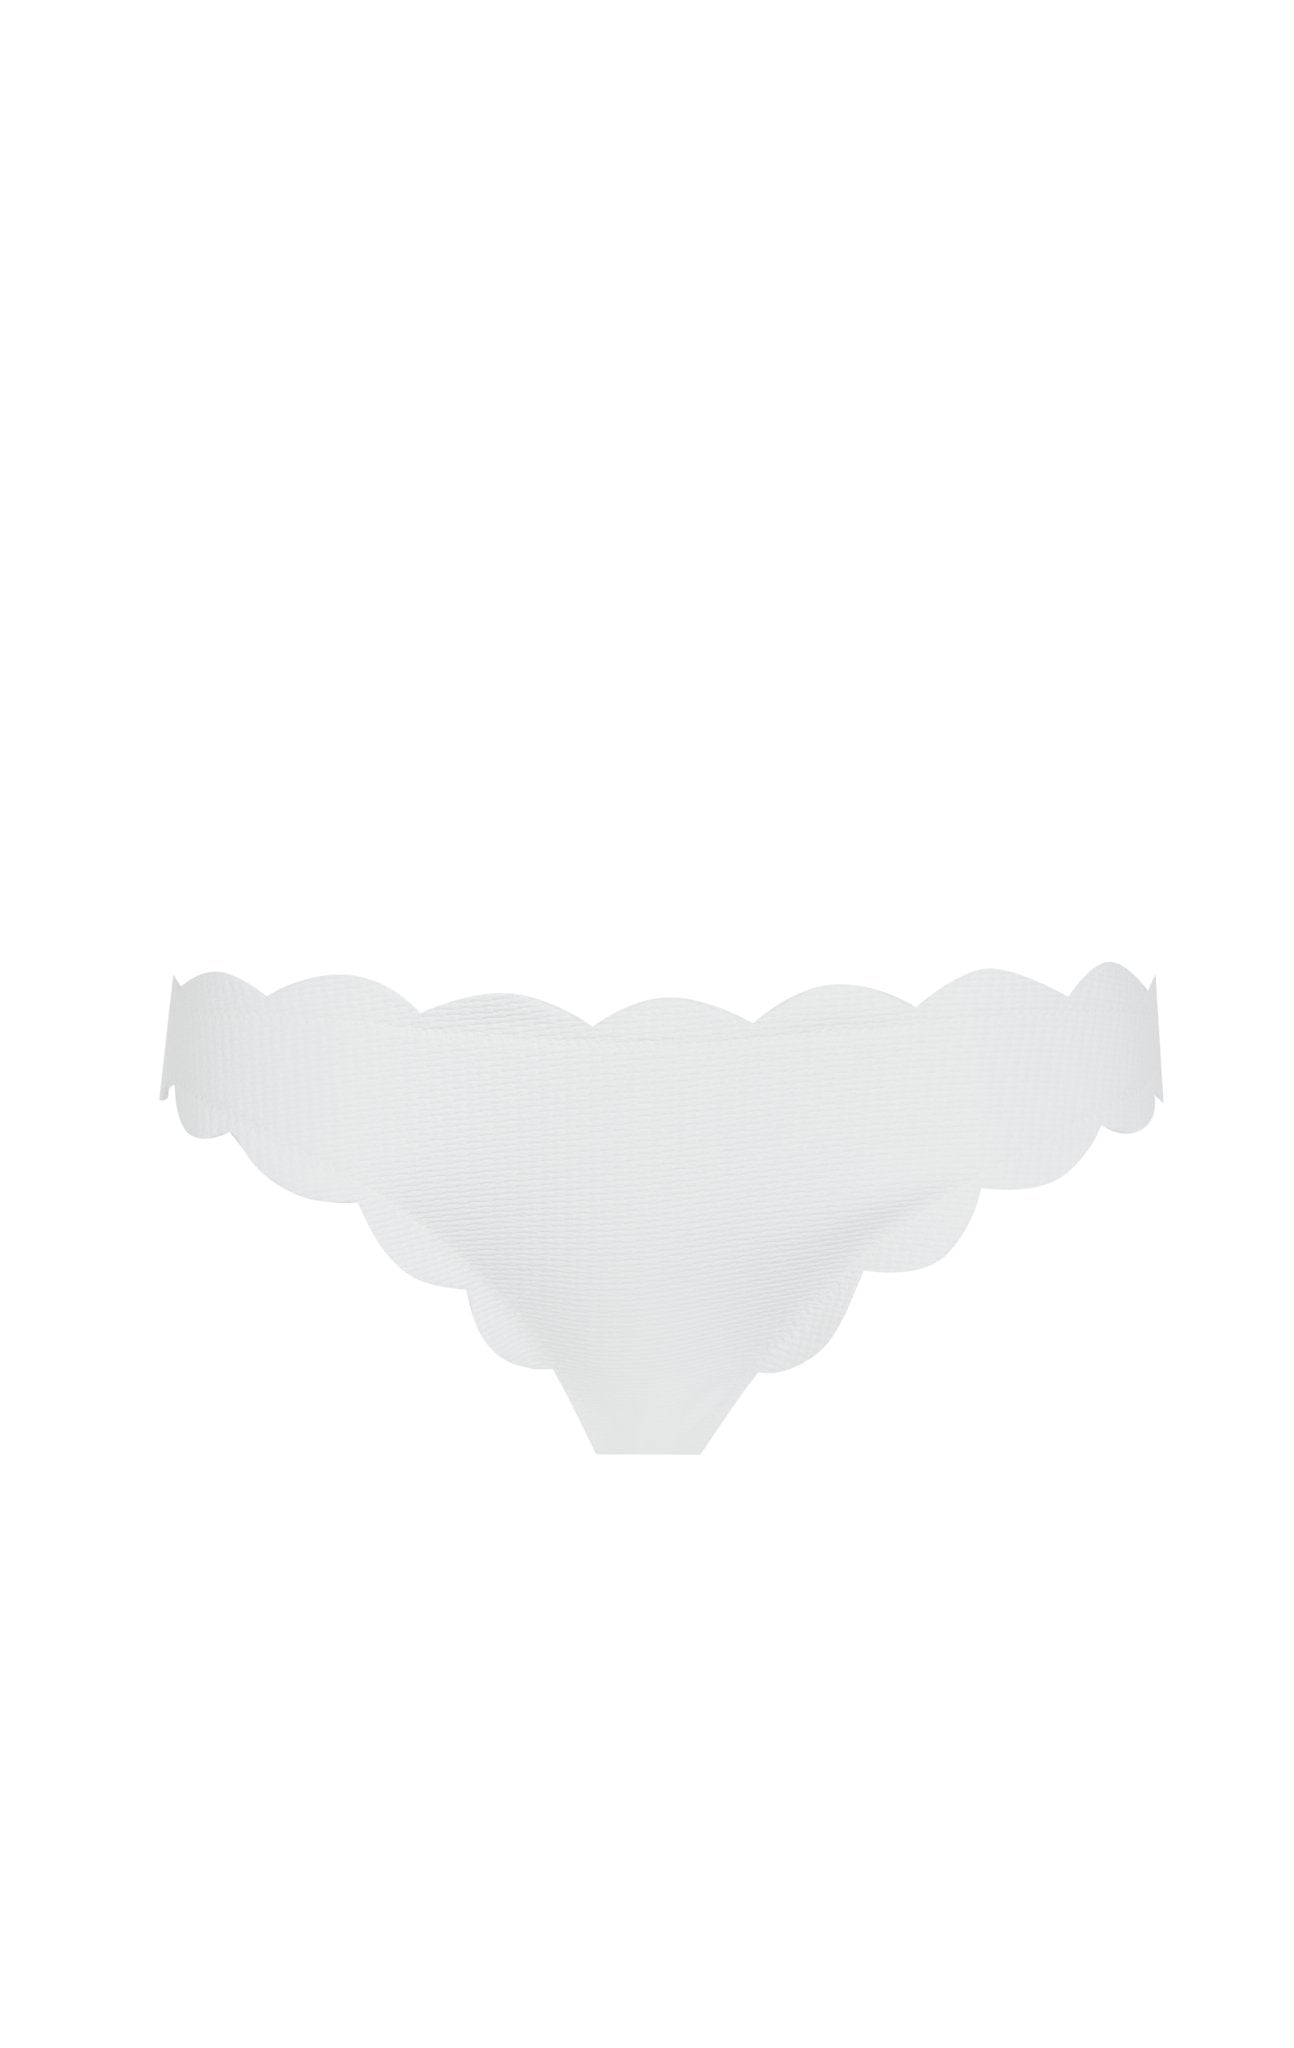 SWIMCLEAN Sustainable Antibes Bottom in Coconut